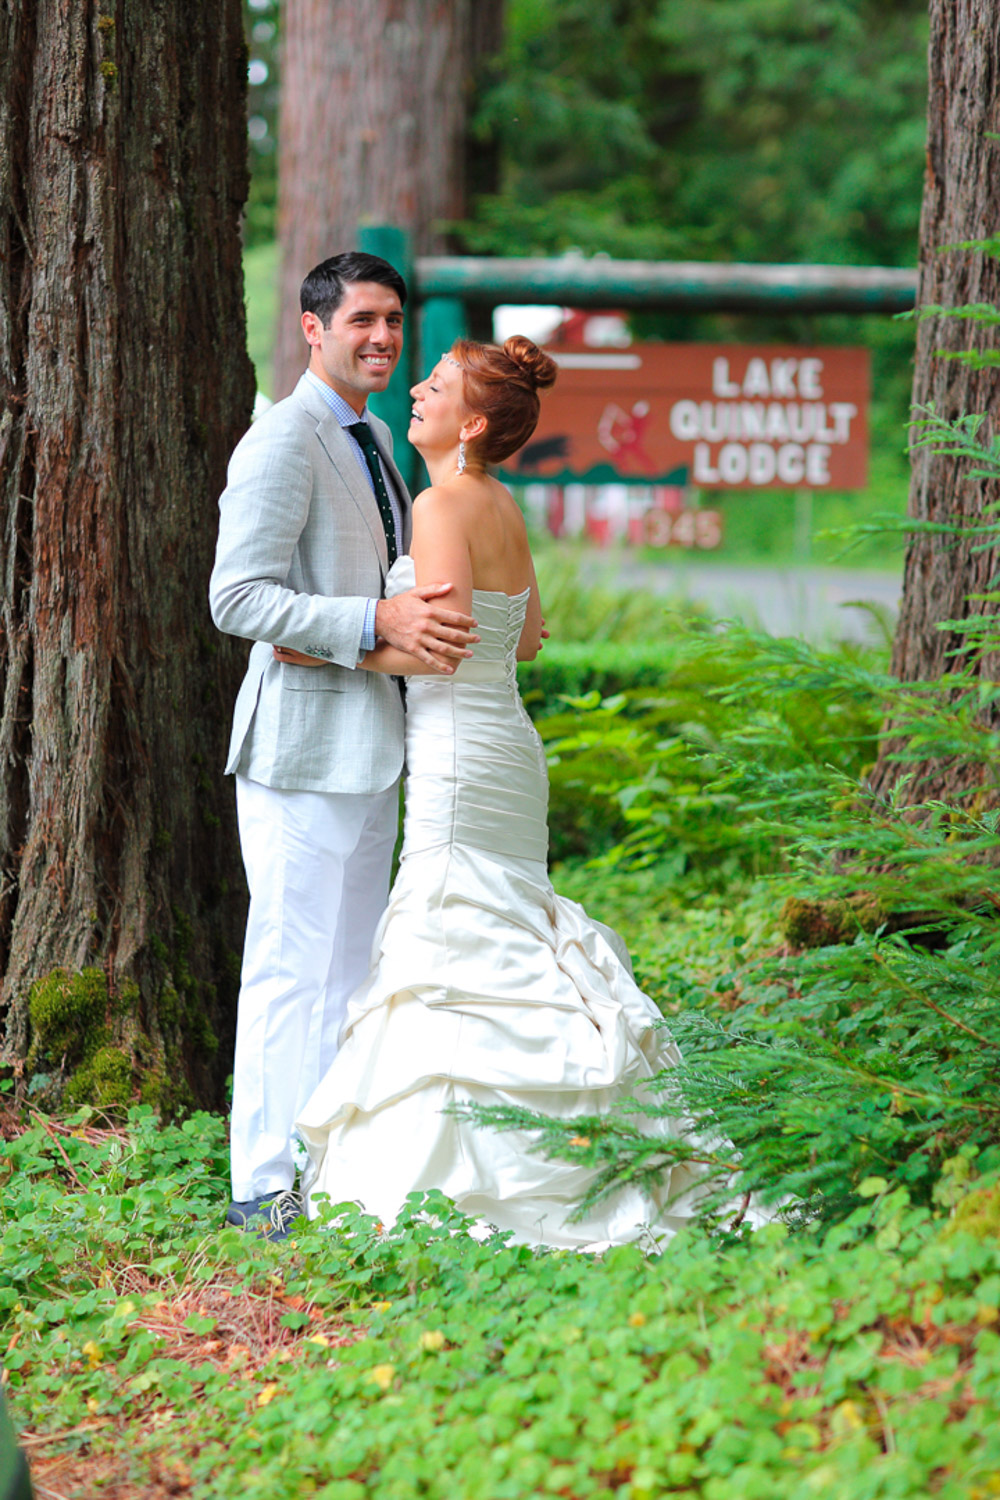 Wedding Photos Lake Quinault Lodge Washington15.jpg